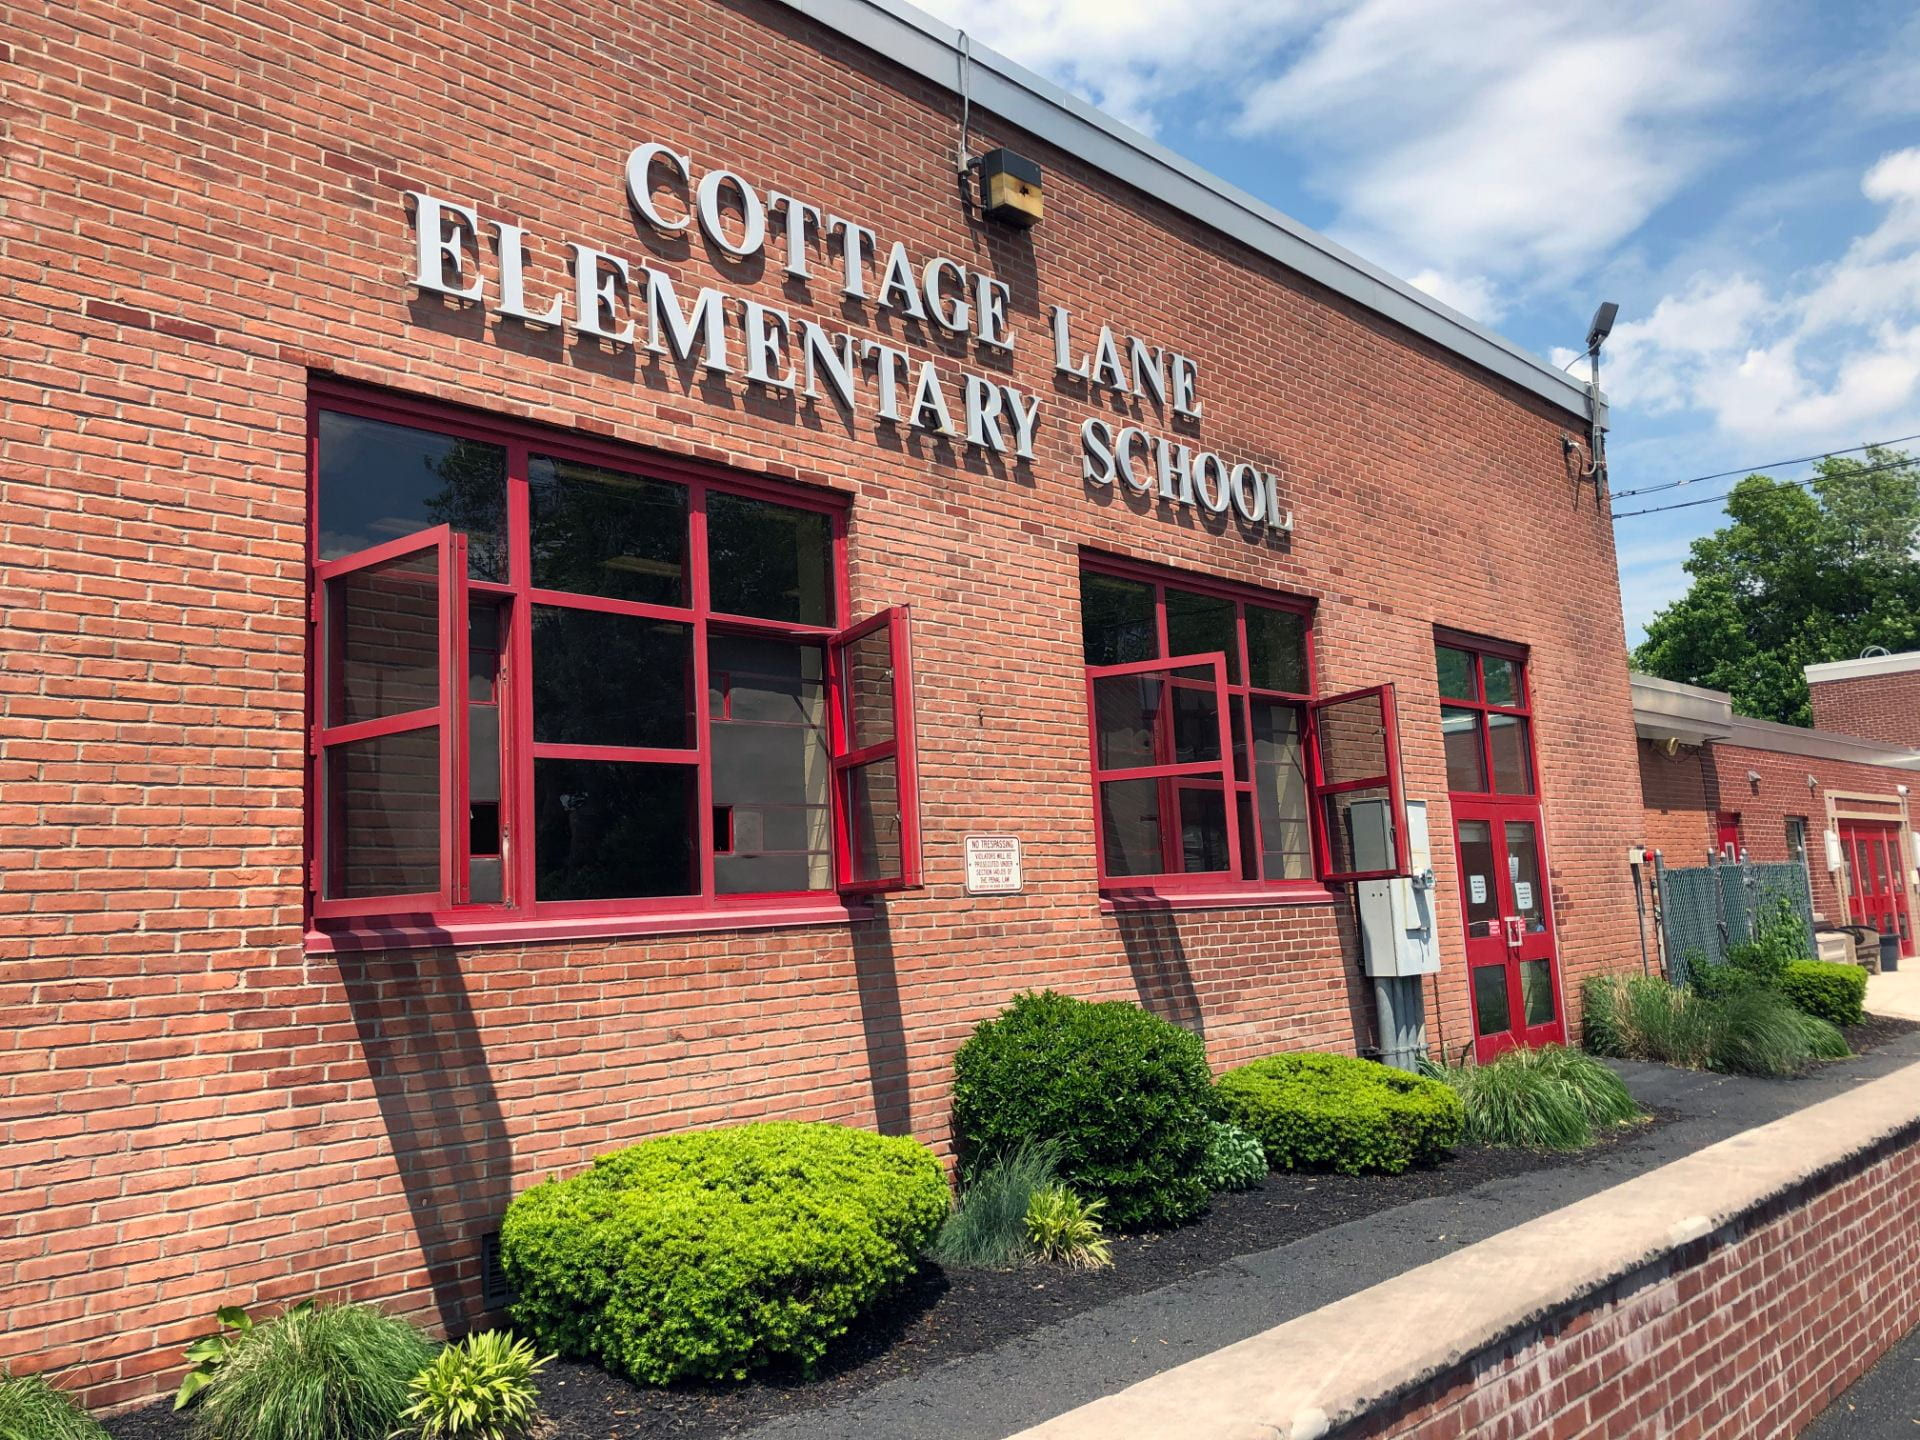 Click here to go to the Cottage Lane Elementary School website